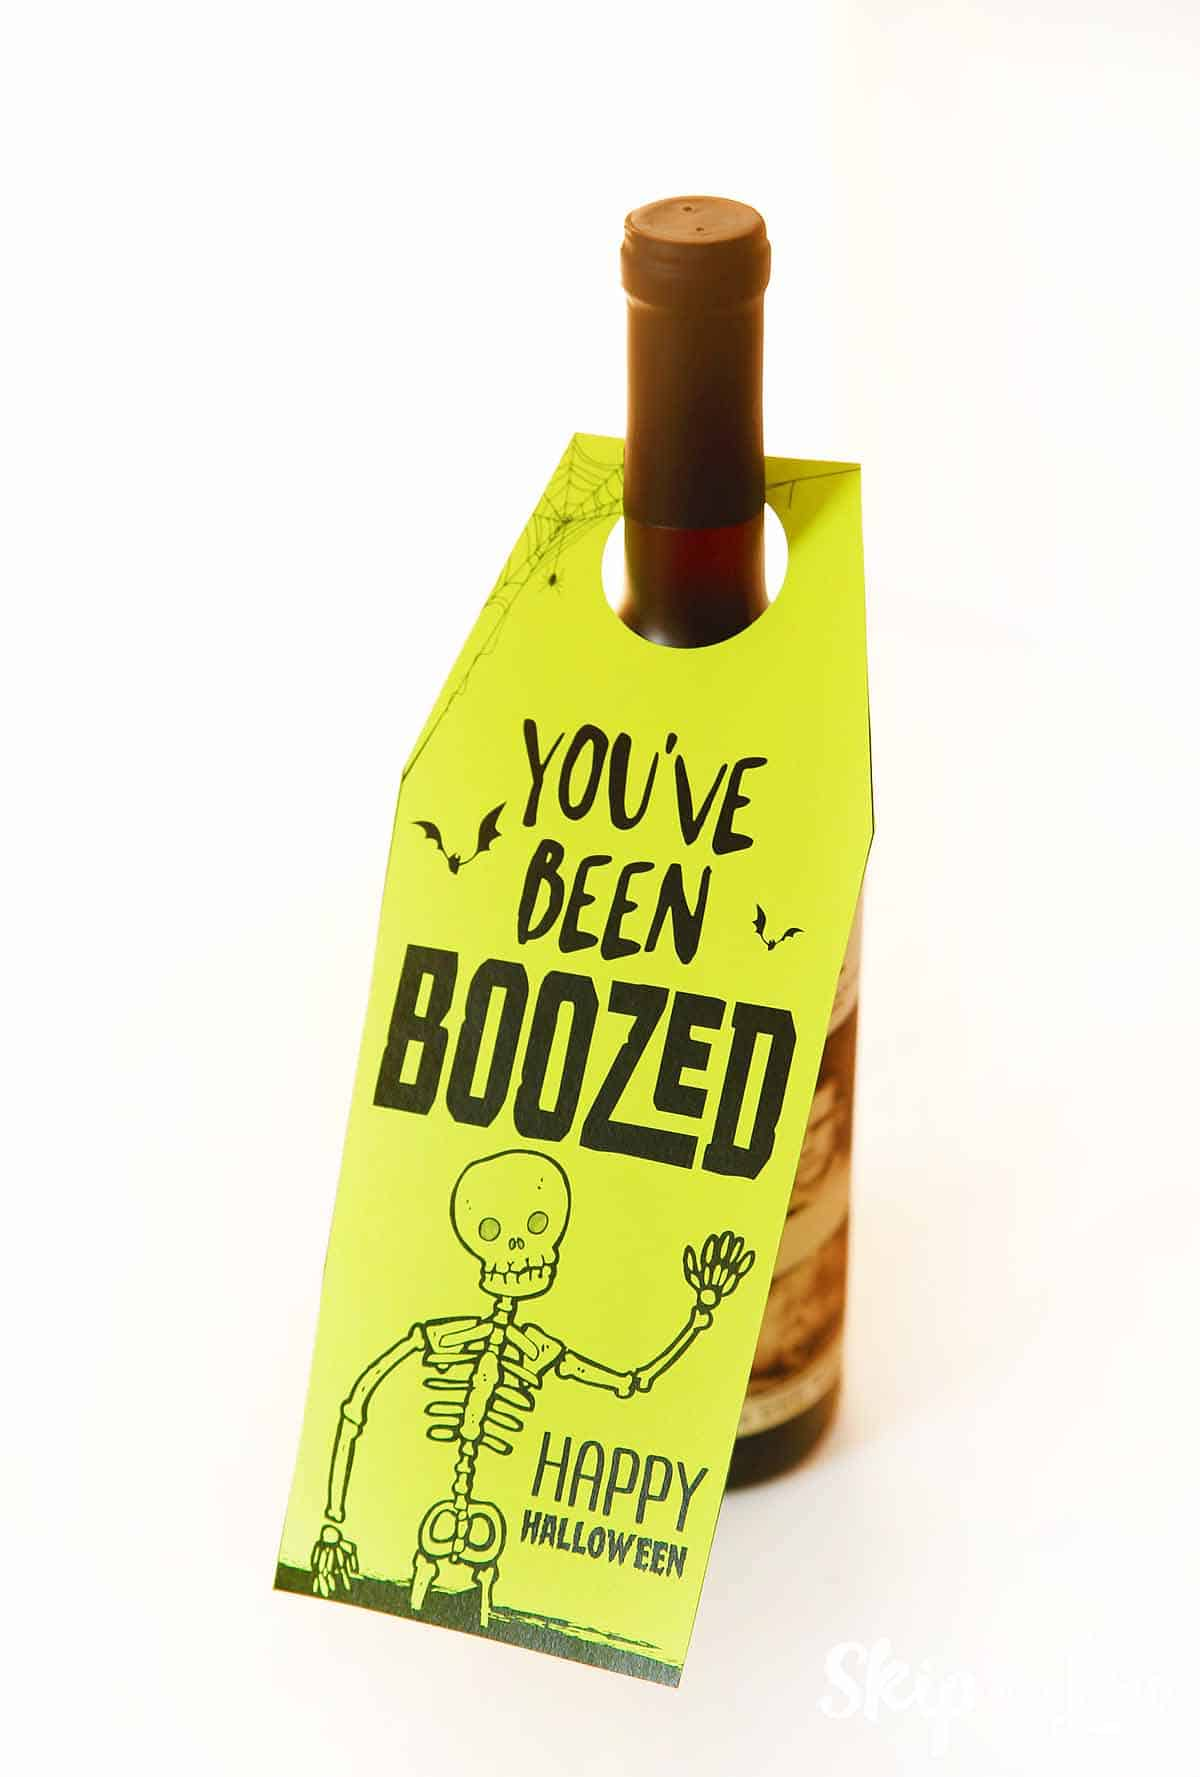 photo regarding You've Been Boozed Printable known as Youve Been BOOzed Pass up Toward My Lou